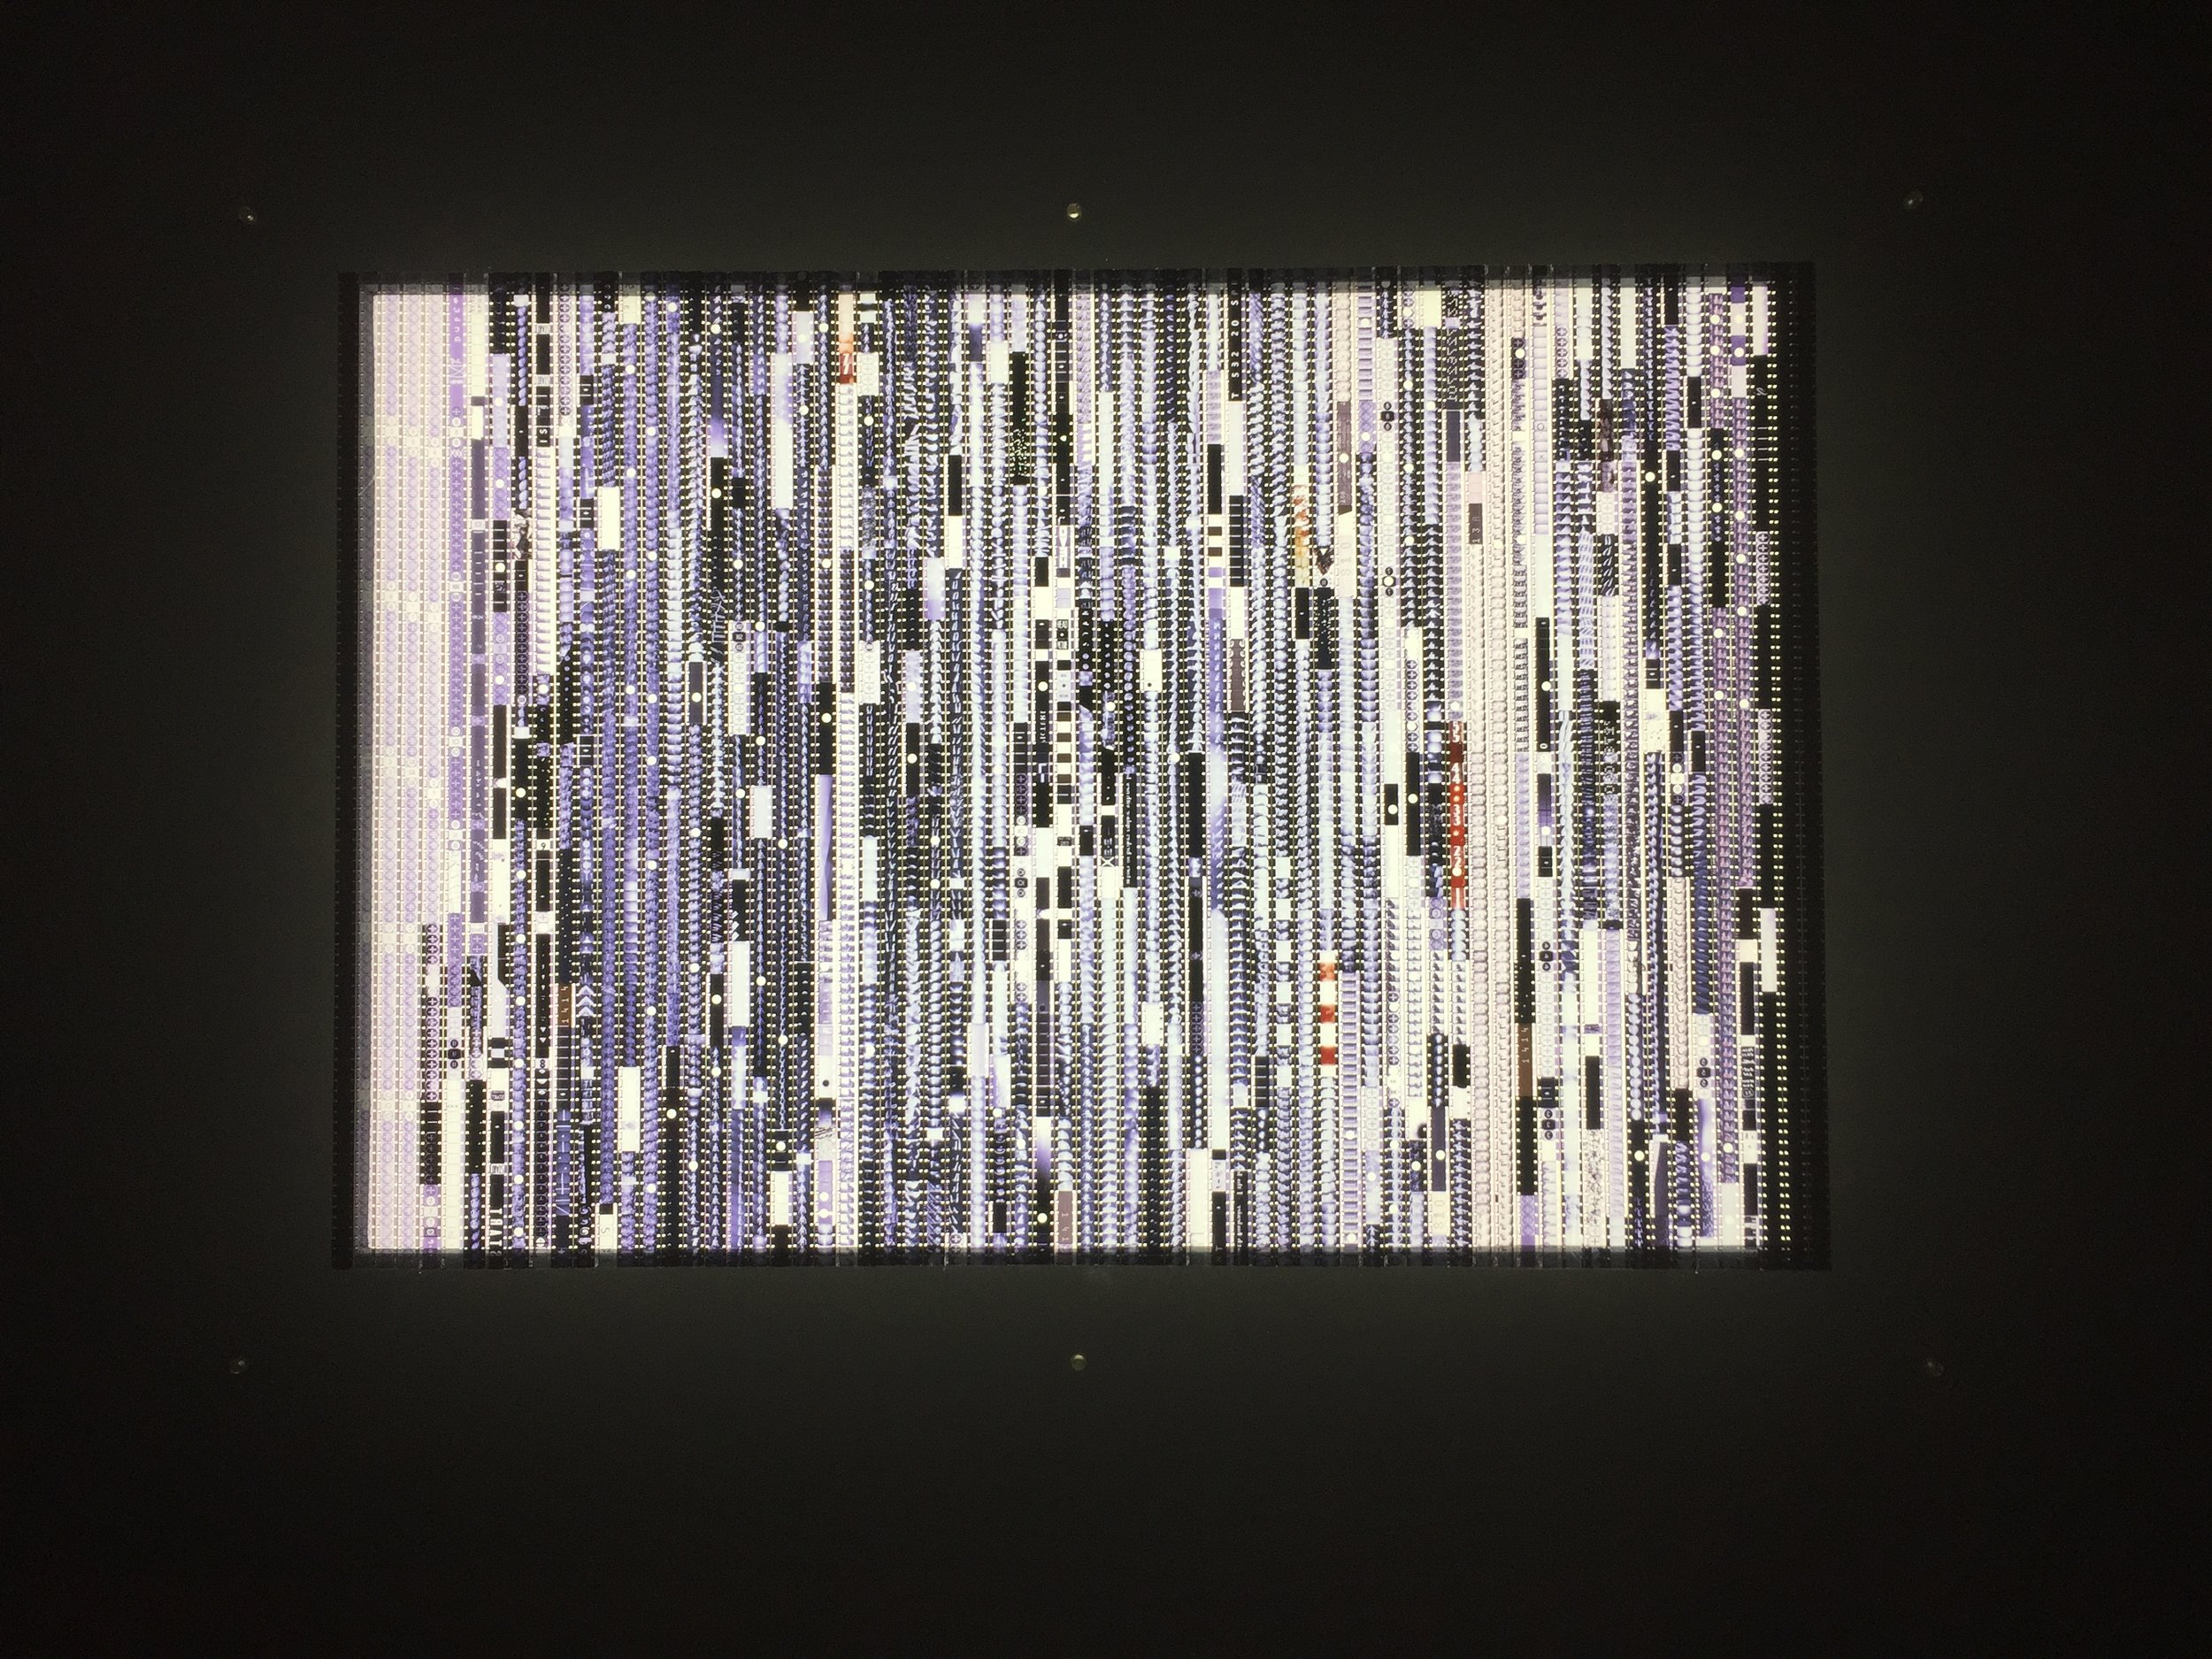 Bruce Conner. Cosmic Ray, 1961. 16 mm color filmstrips with Plexiglas.